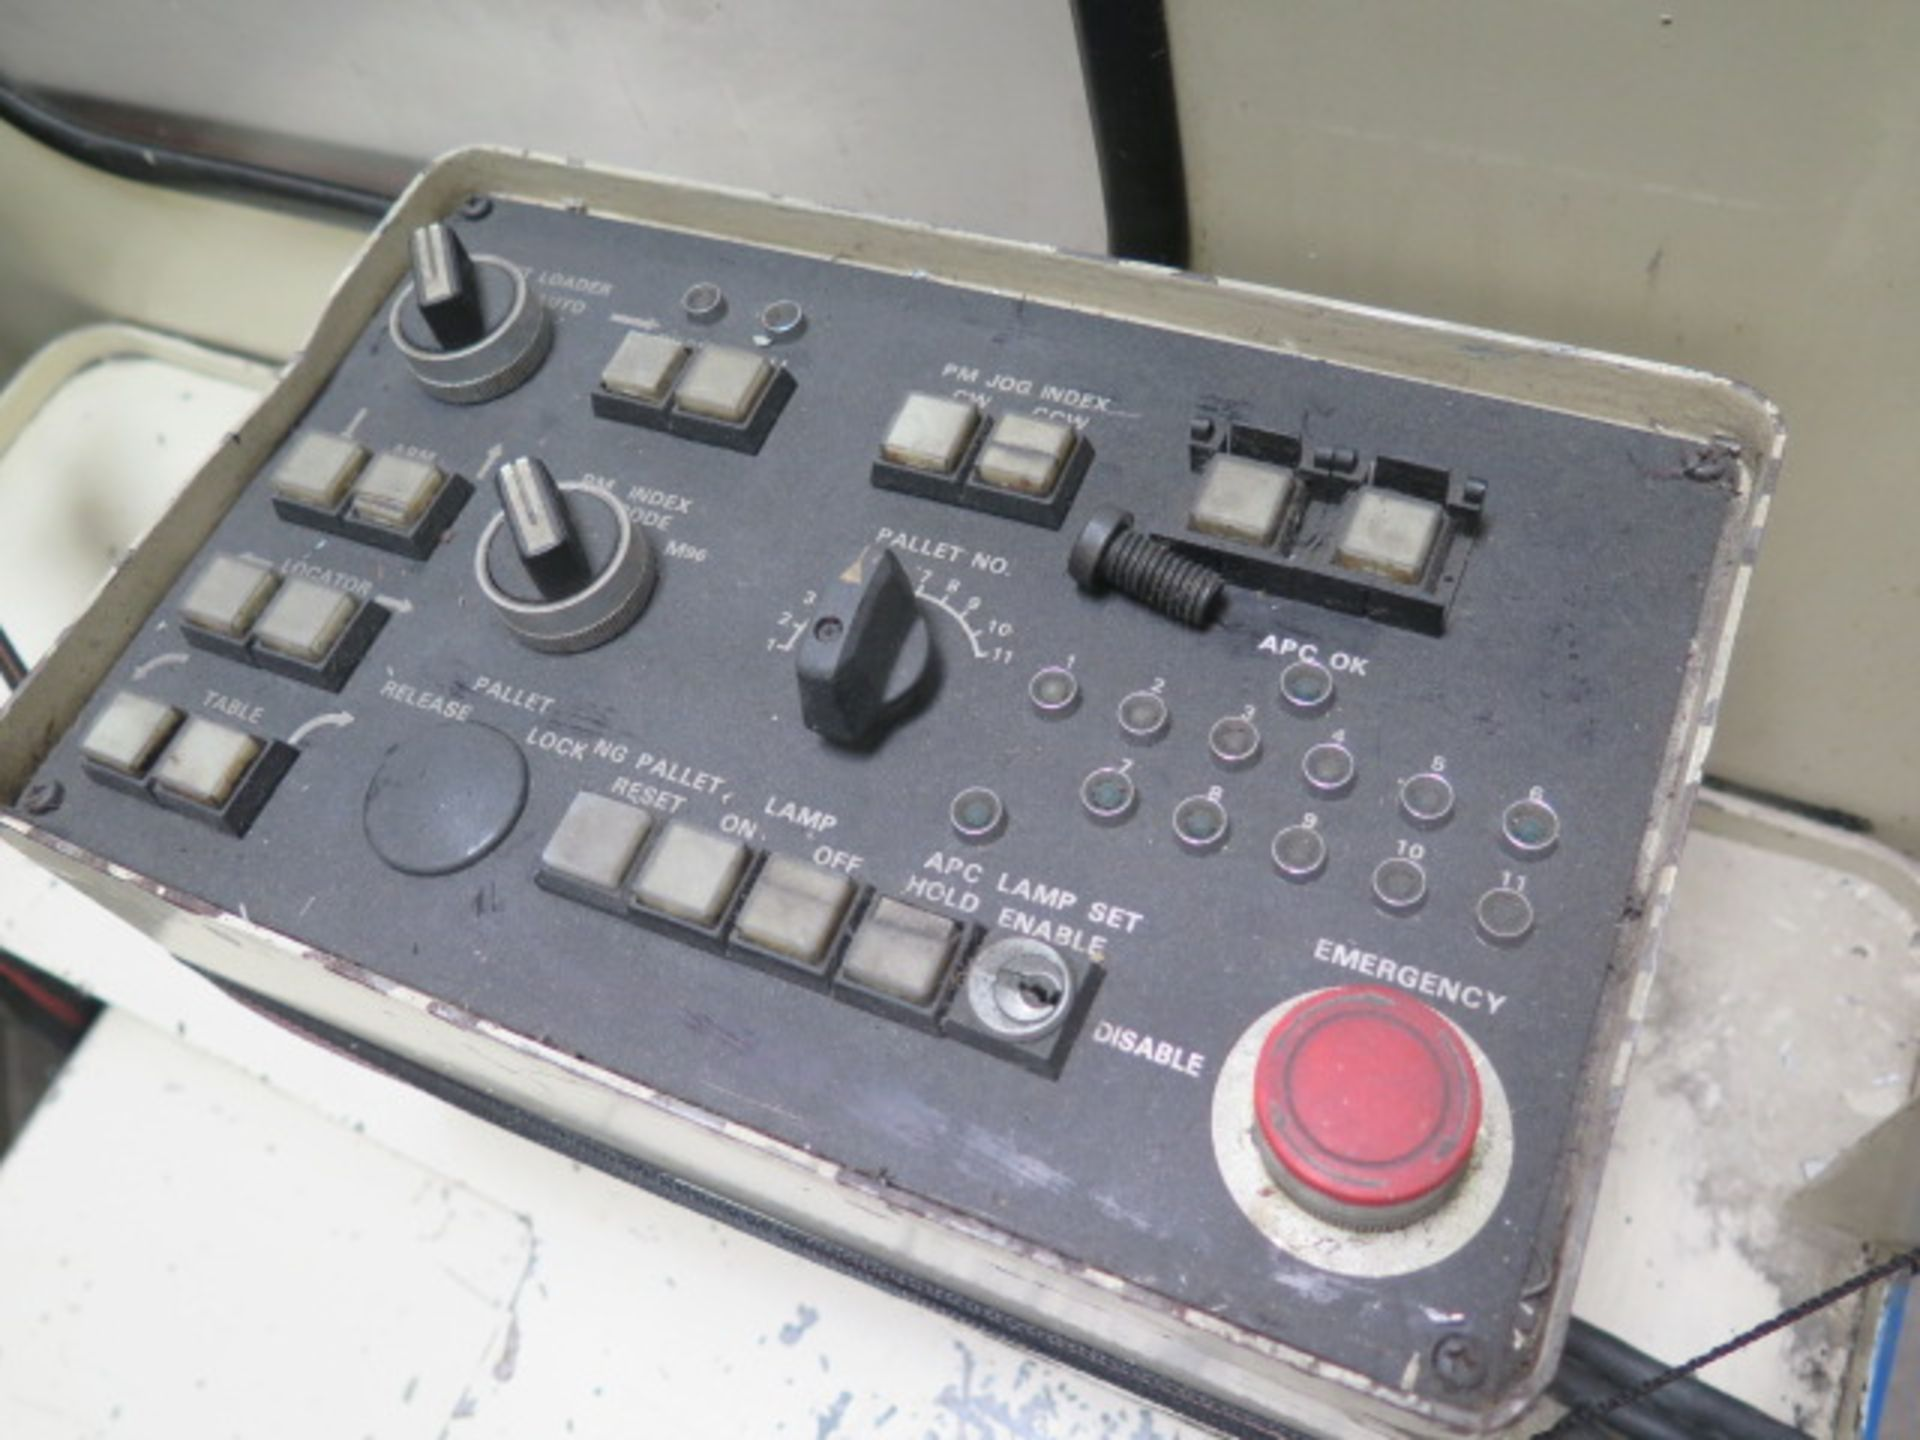 Tsugami MS3.10P Type MA3H 4-Axis 10-Pallet CNC HMC (HAS X-AXIS PROBLEM), SOLD AS IS - Image 15 of 20